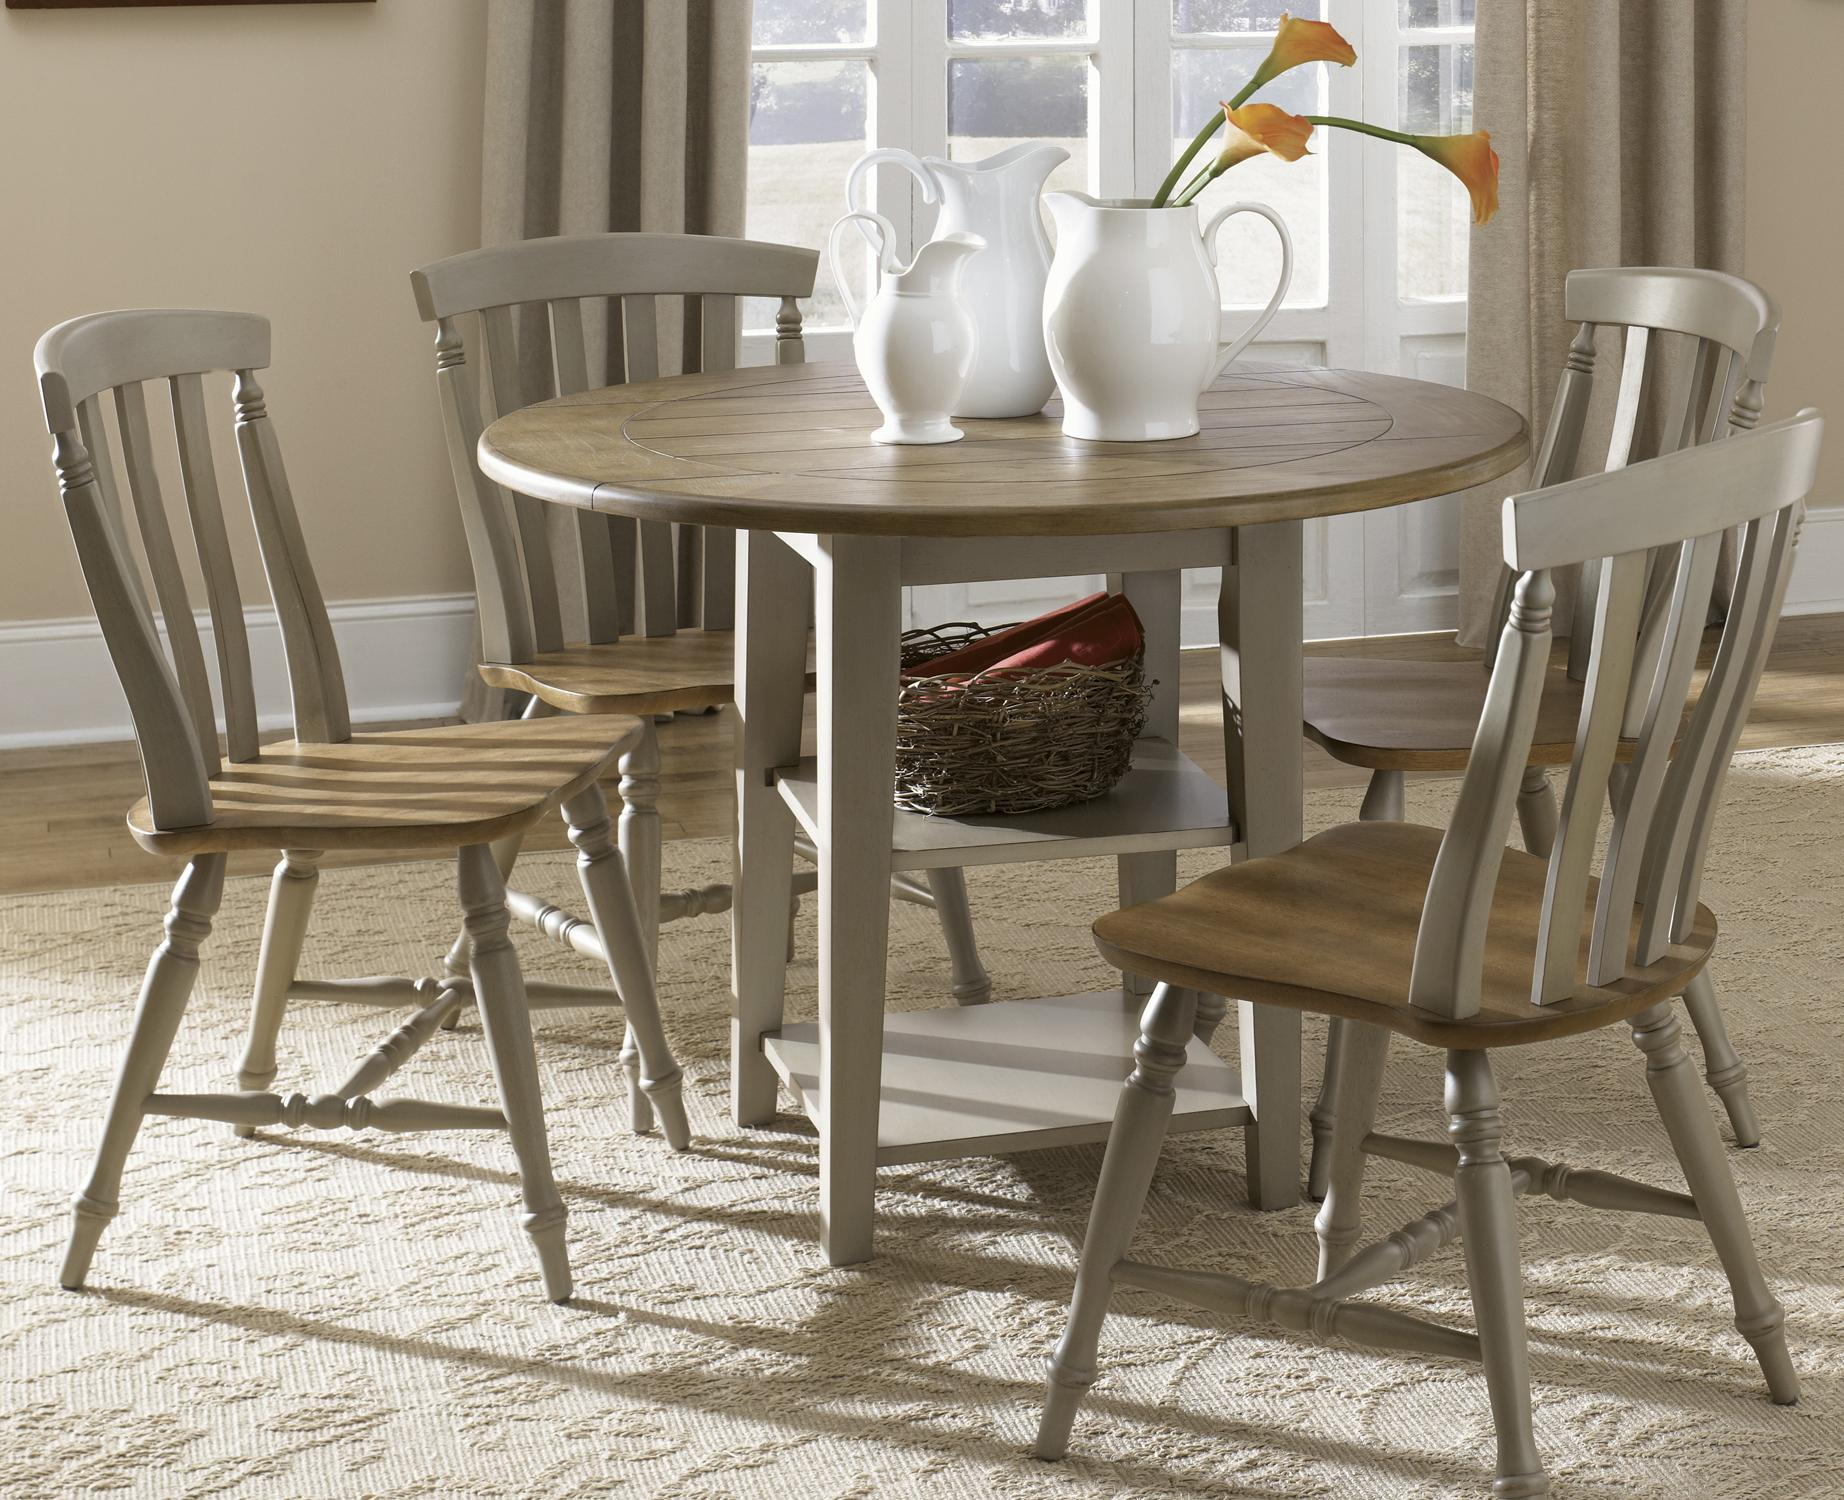 Drop Leaf Table With Chairs Liberty Furniture Al Fresco 541 Cd 5dls 5 Piece Drop Leaf